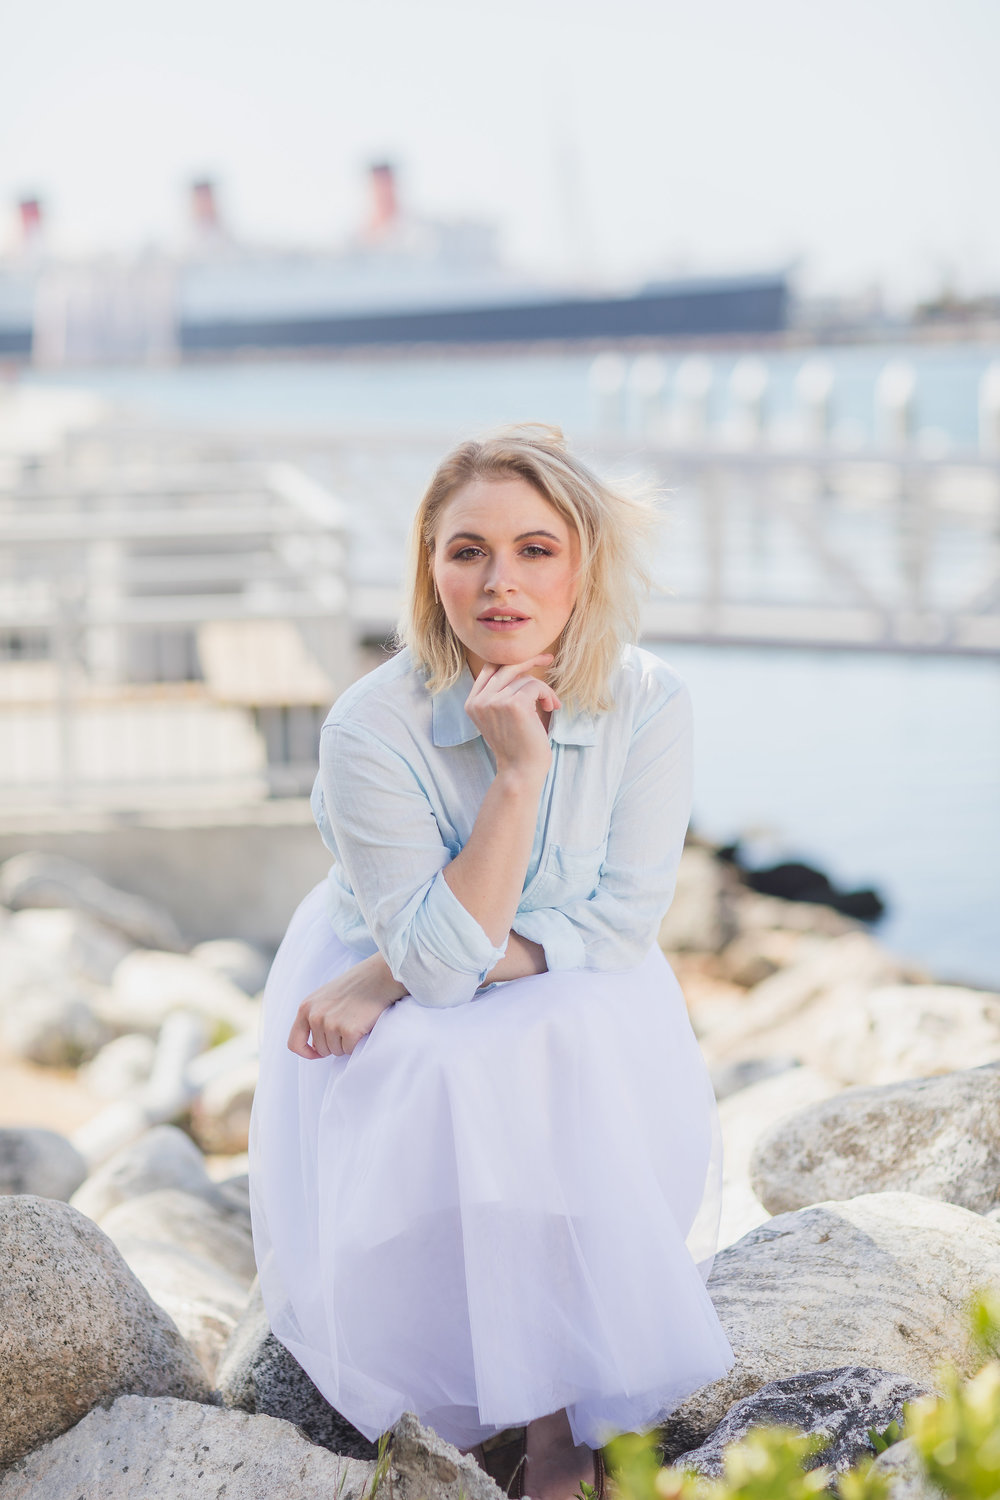 Beautiful edgy female blonde model sitting on the bank of a jetty.jpg